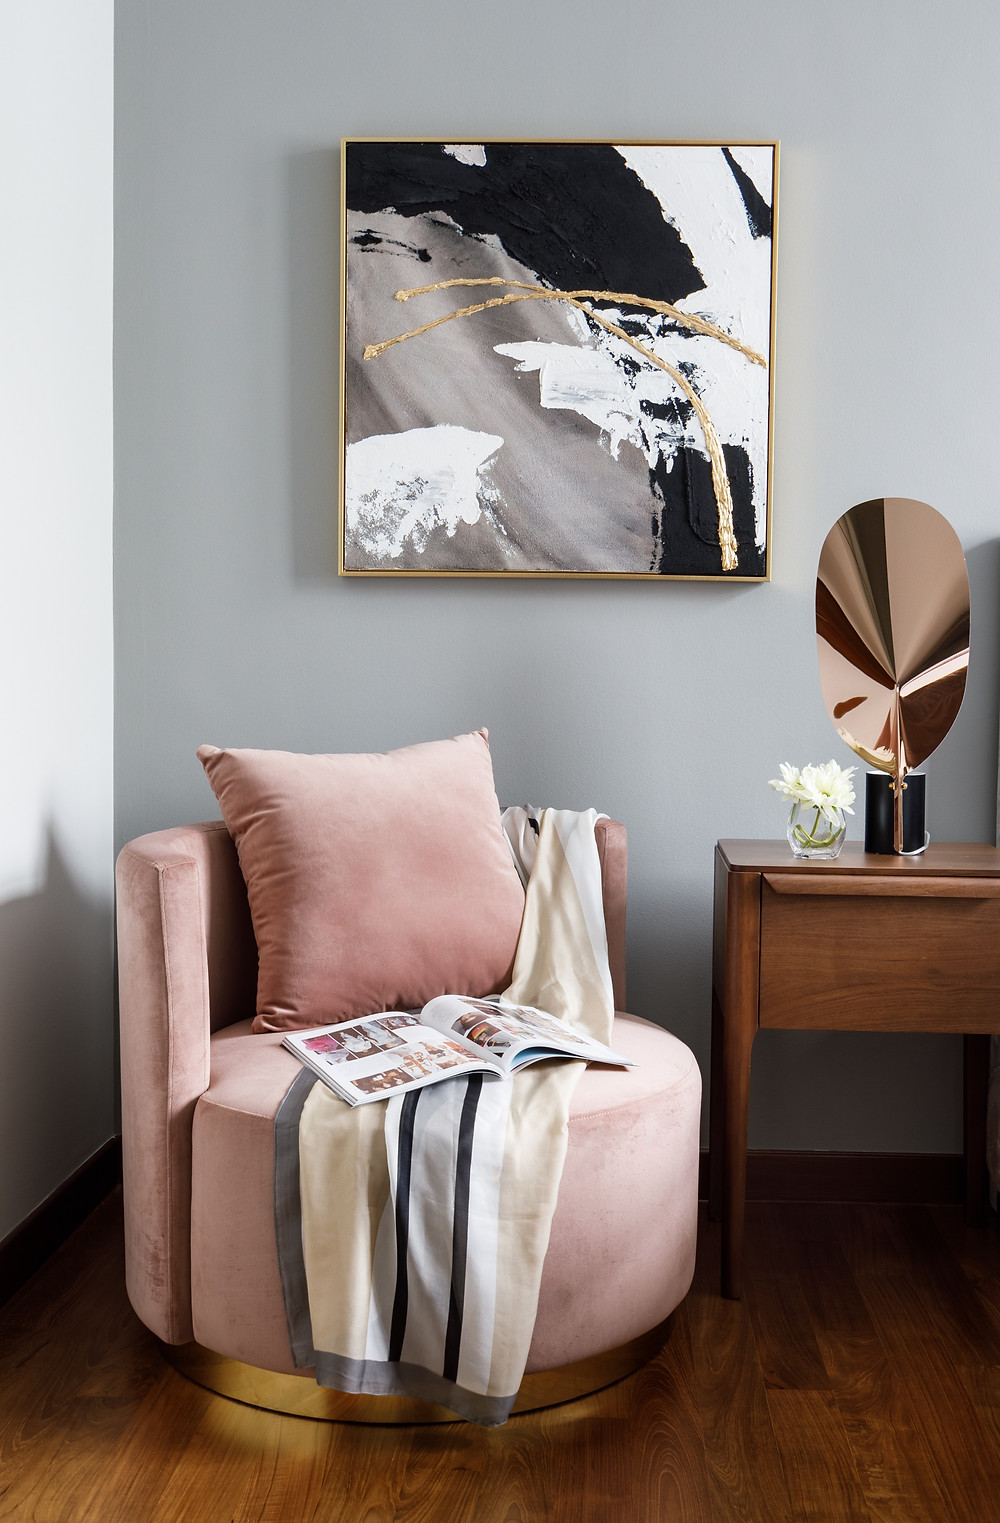 velvet blush armchair, pink cushion, artwork, scarf